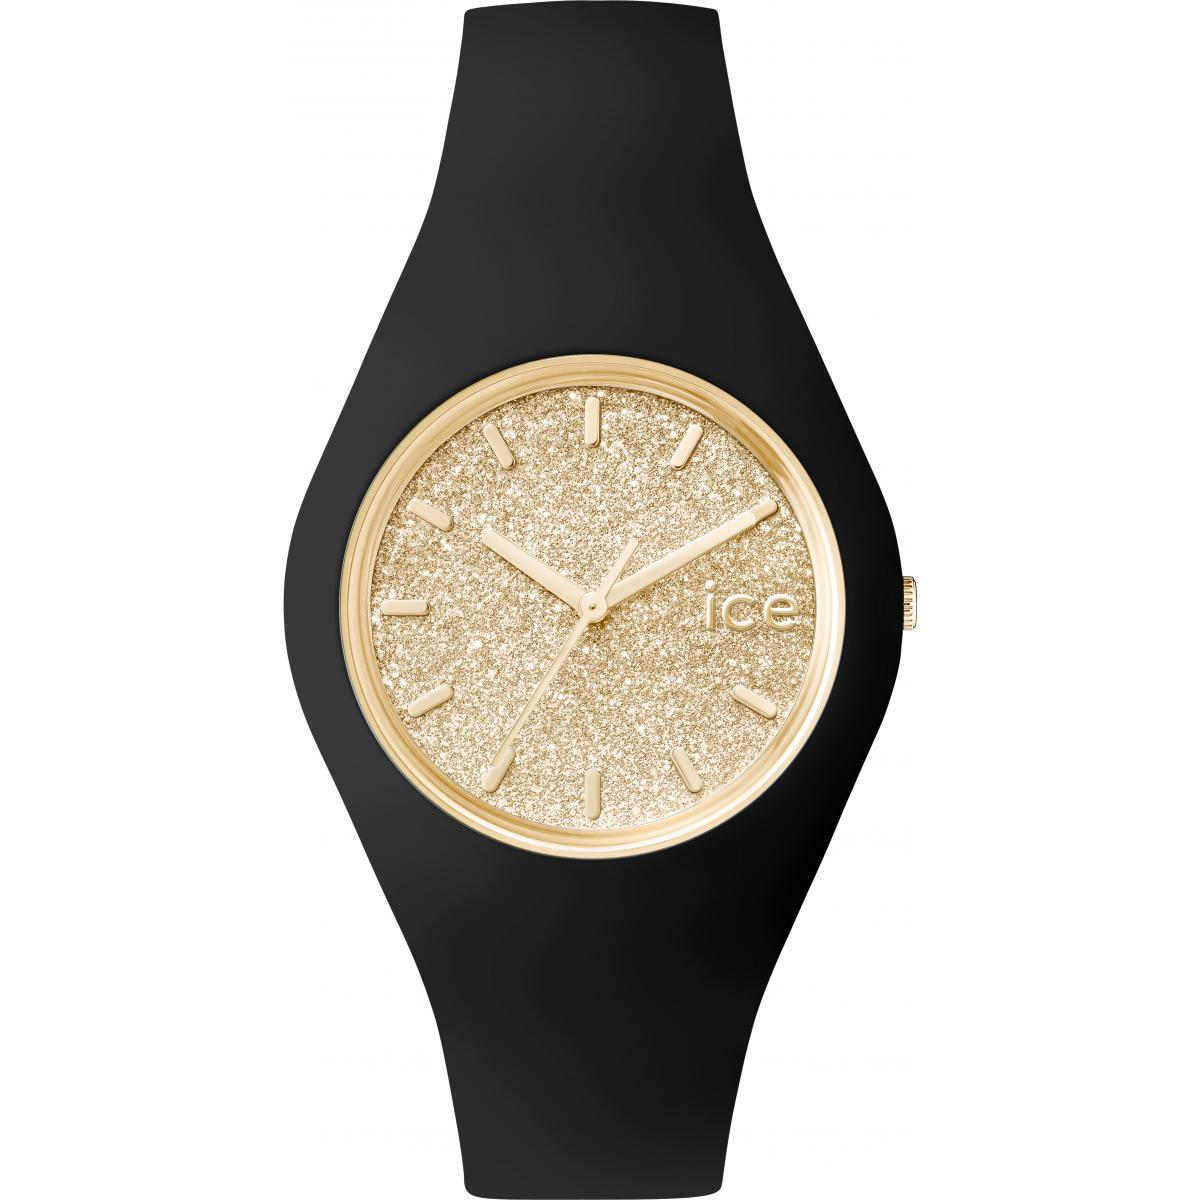 Montre Ice Watch Ice-Glitter ICE.GT.BGD.U.S.15 - Montre Or Noire  Femme